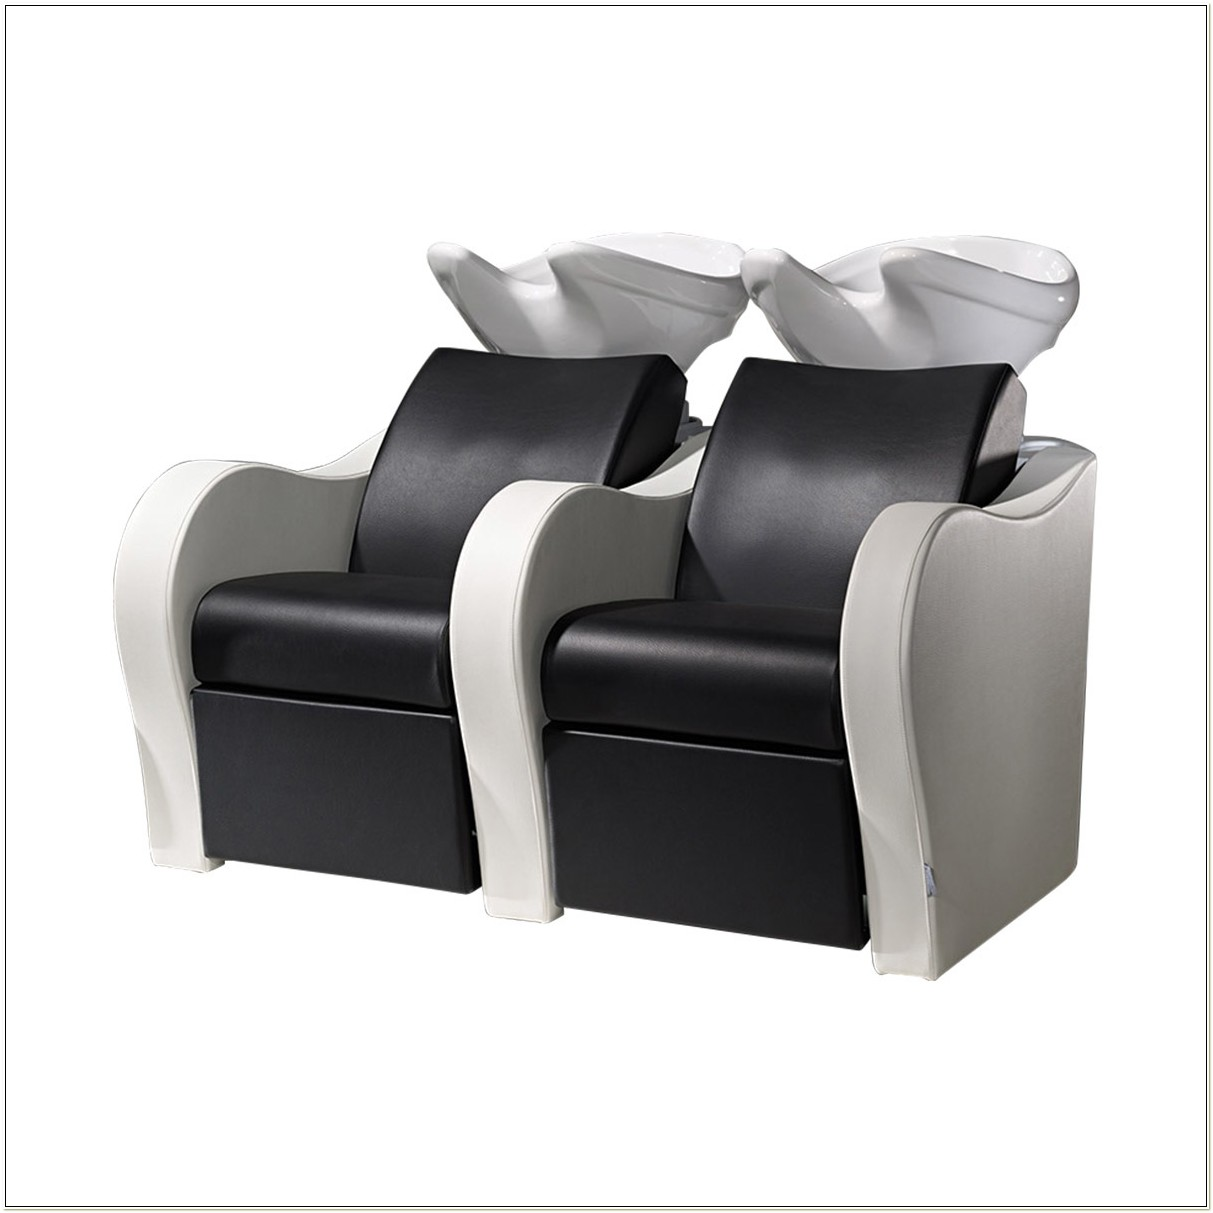 Hairdresser Sink And Chair